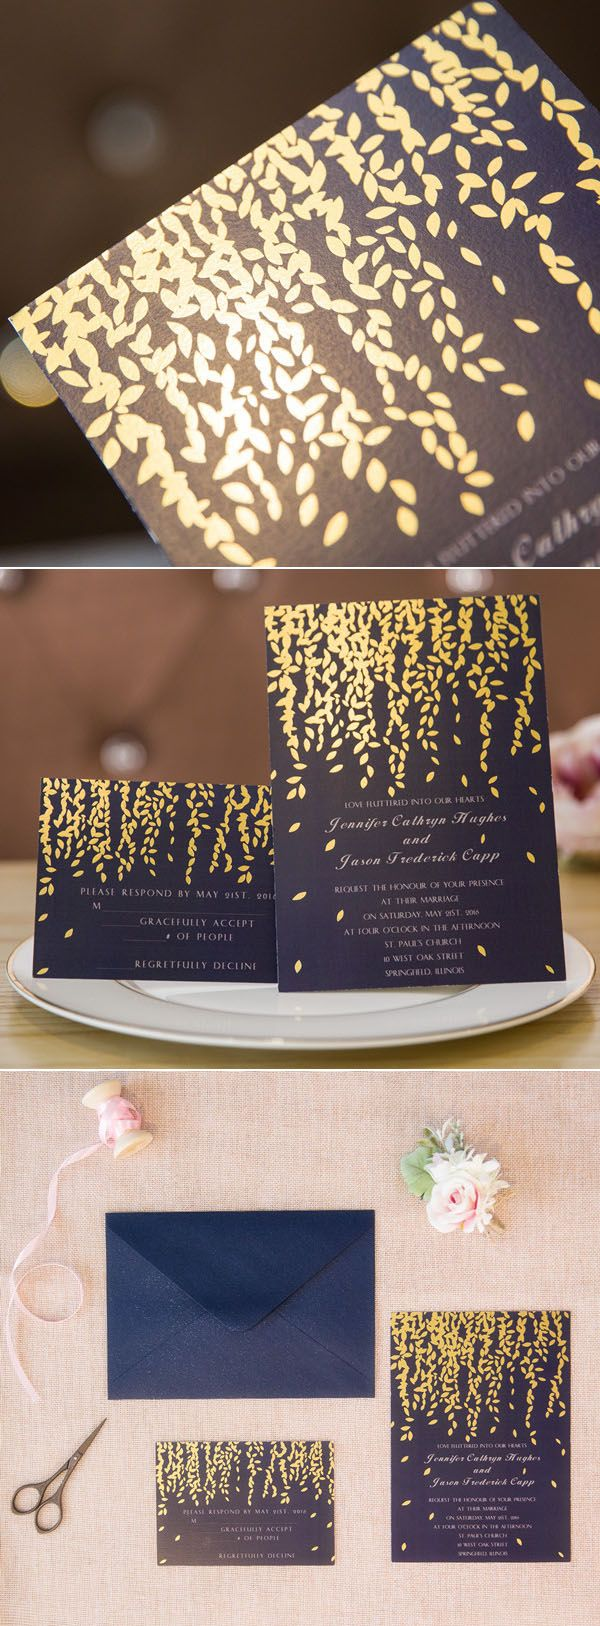 leaves themed navy blue and gold foil wedding invitations @elegantwinvites